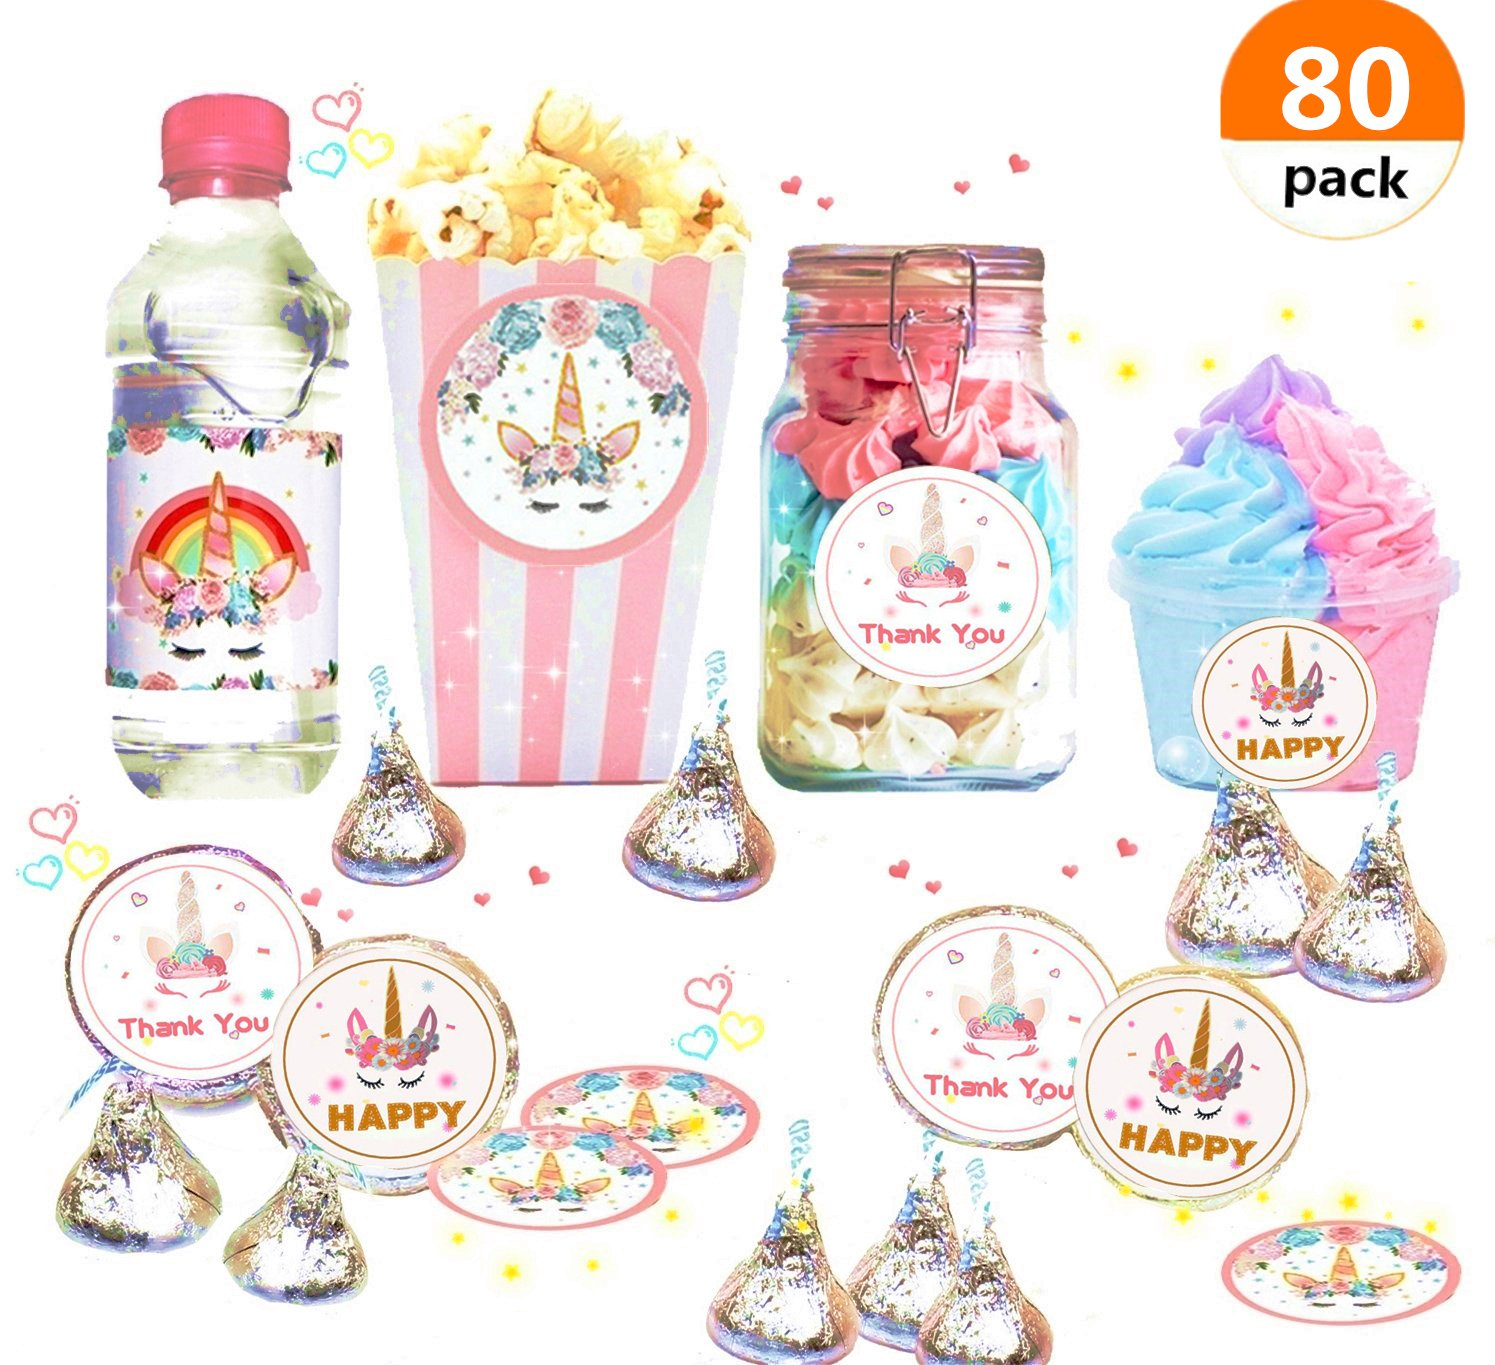 (80 Pack) JeVenis Magical Rainbow Unicorn Stickers Thank you Stickers Water Bottle Sticker Labels for Unicorn Party Supplies Baby Shower Birthday Party